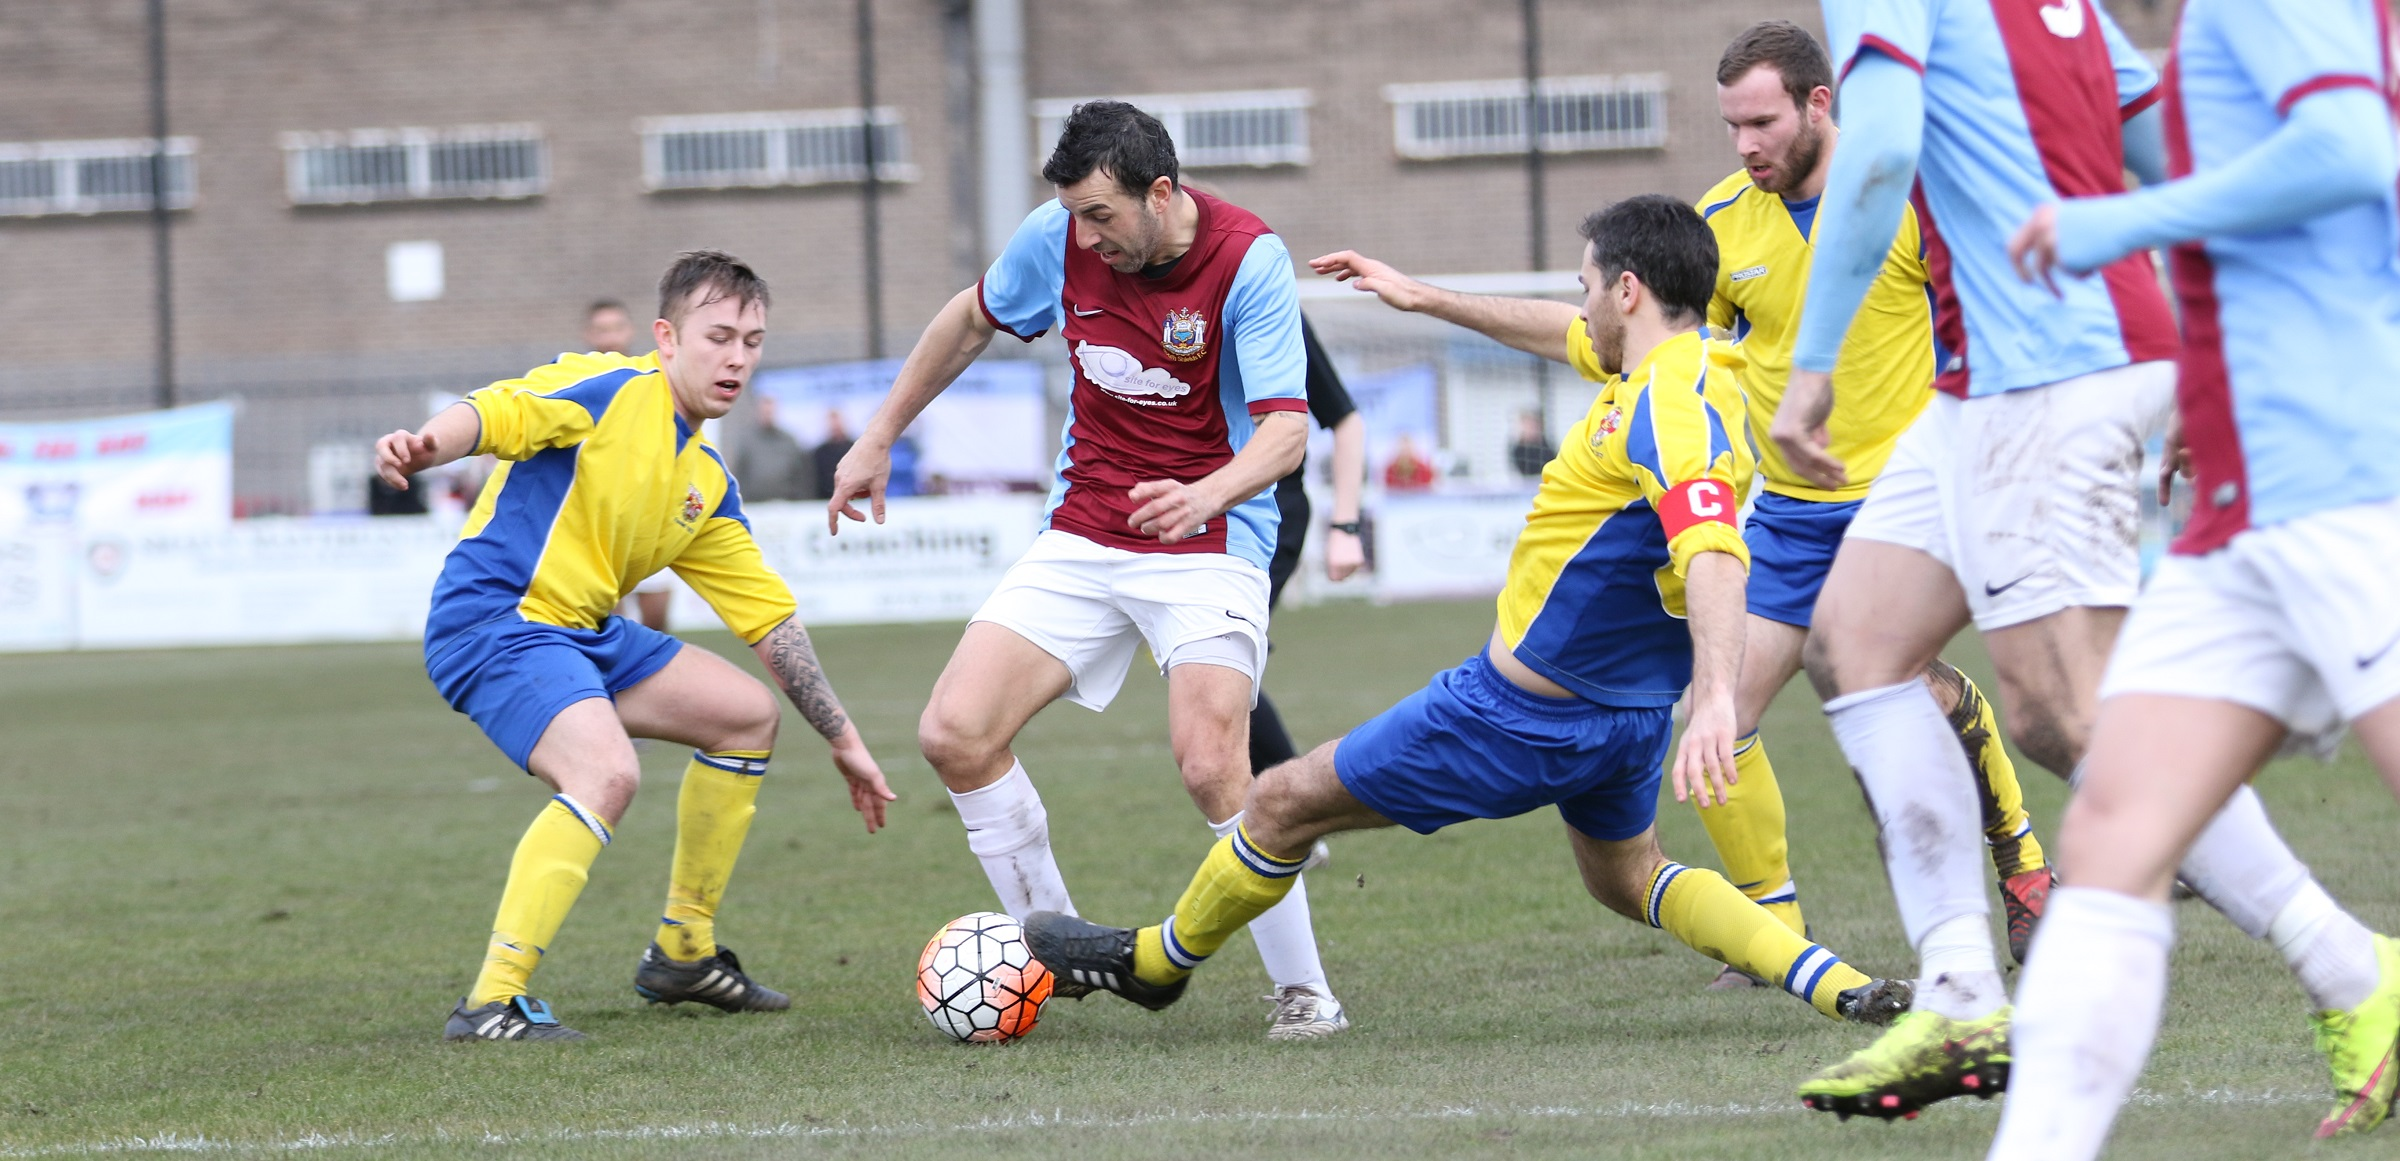 In Pictures: South Shields 2-0 Chester-le-Street Town